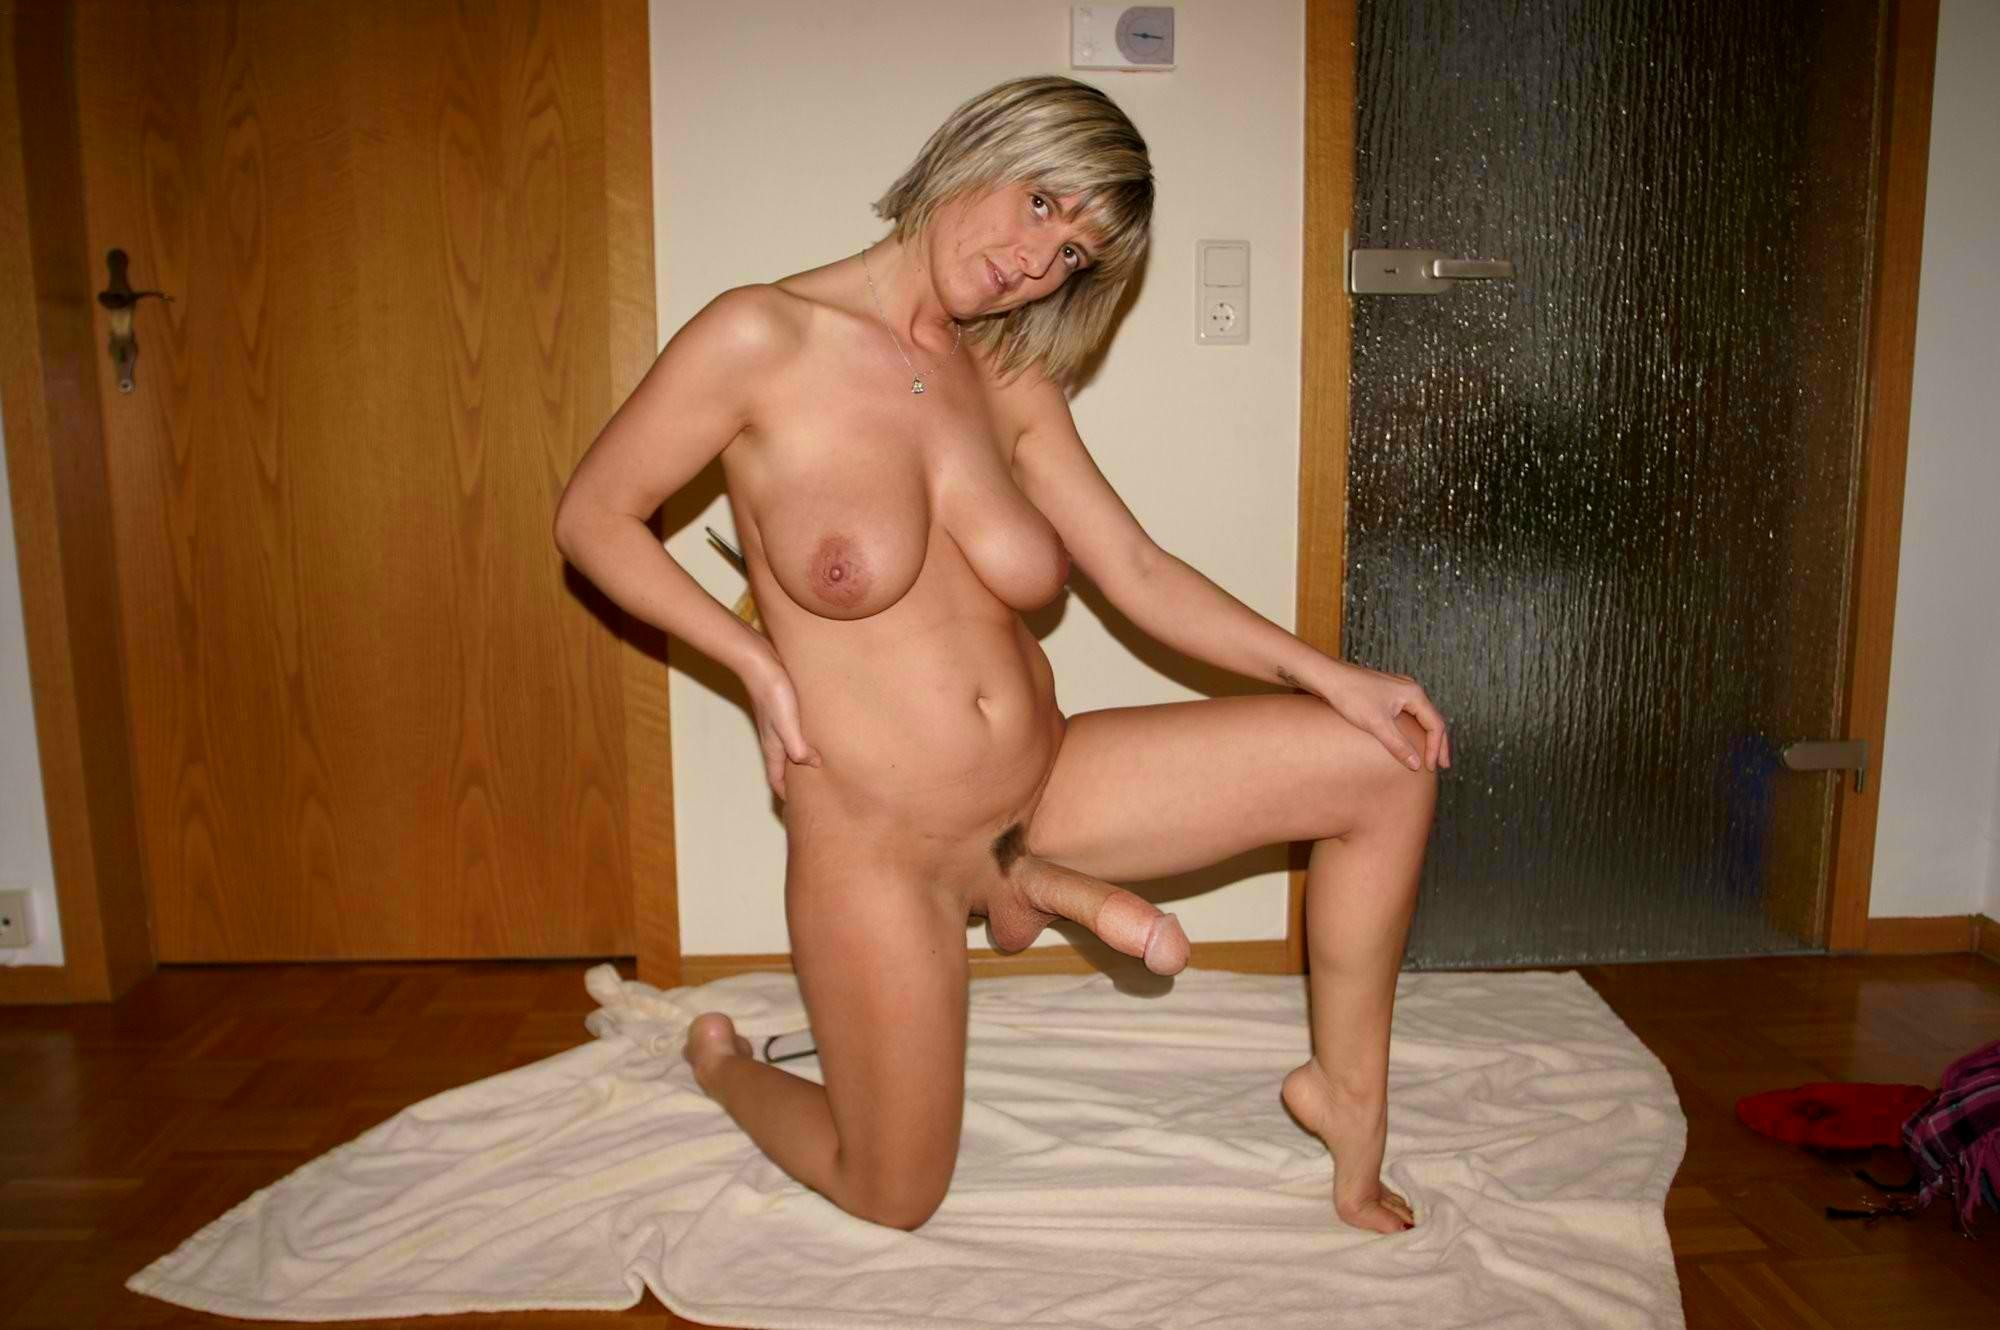 Expand her orgasm tonight